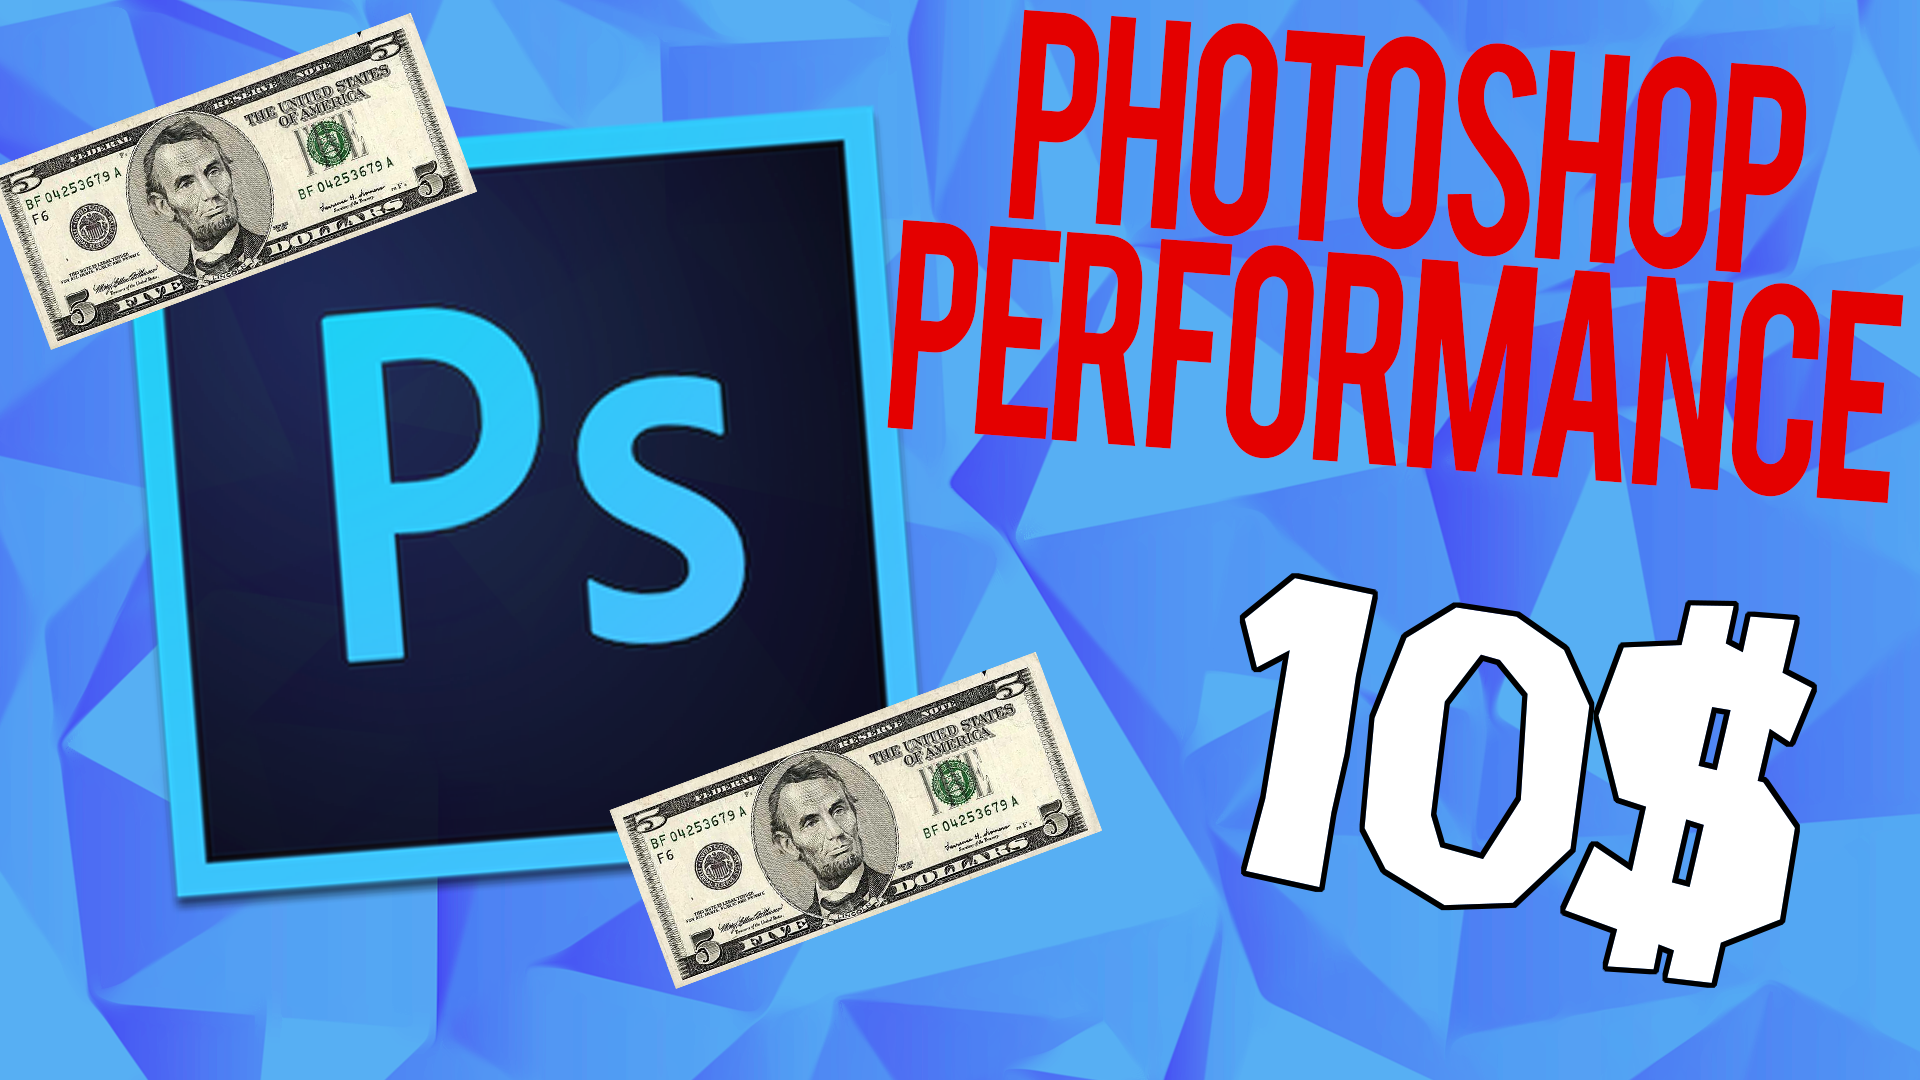 Photoshop Editing Service